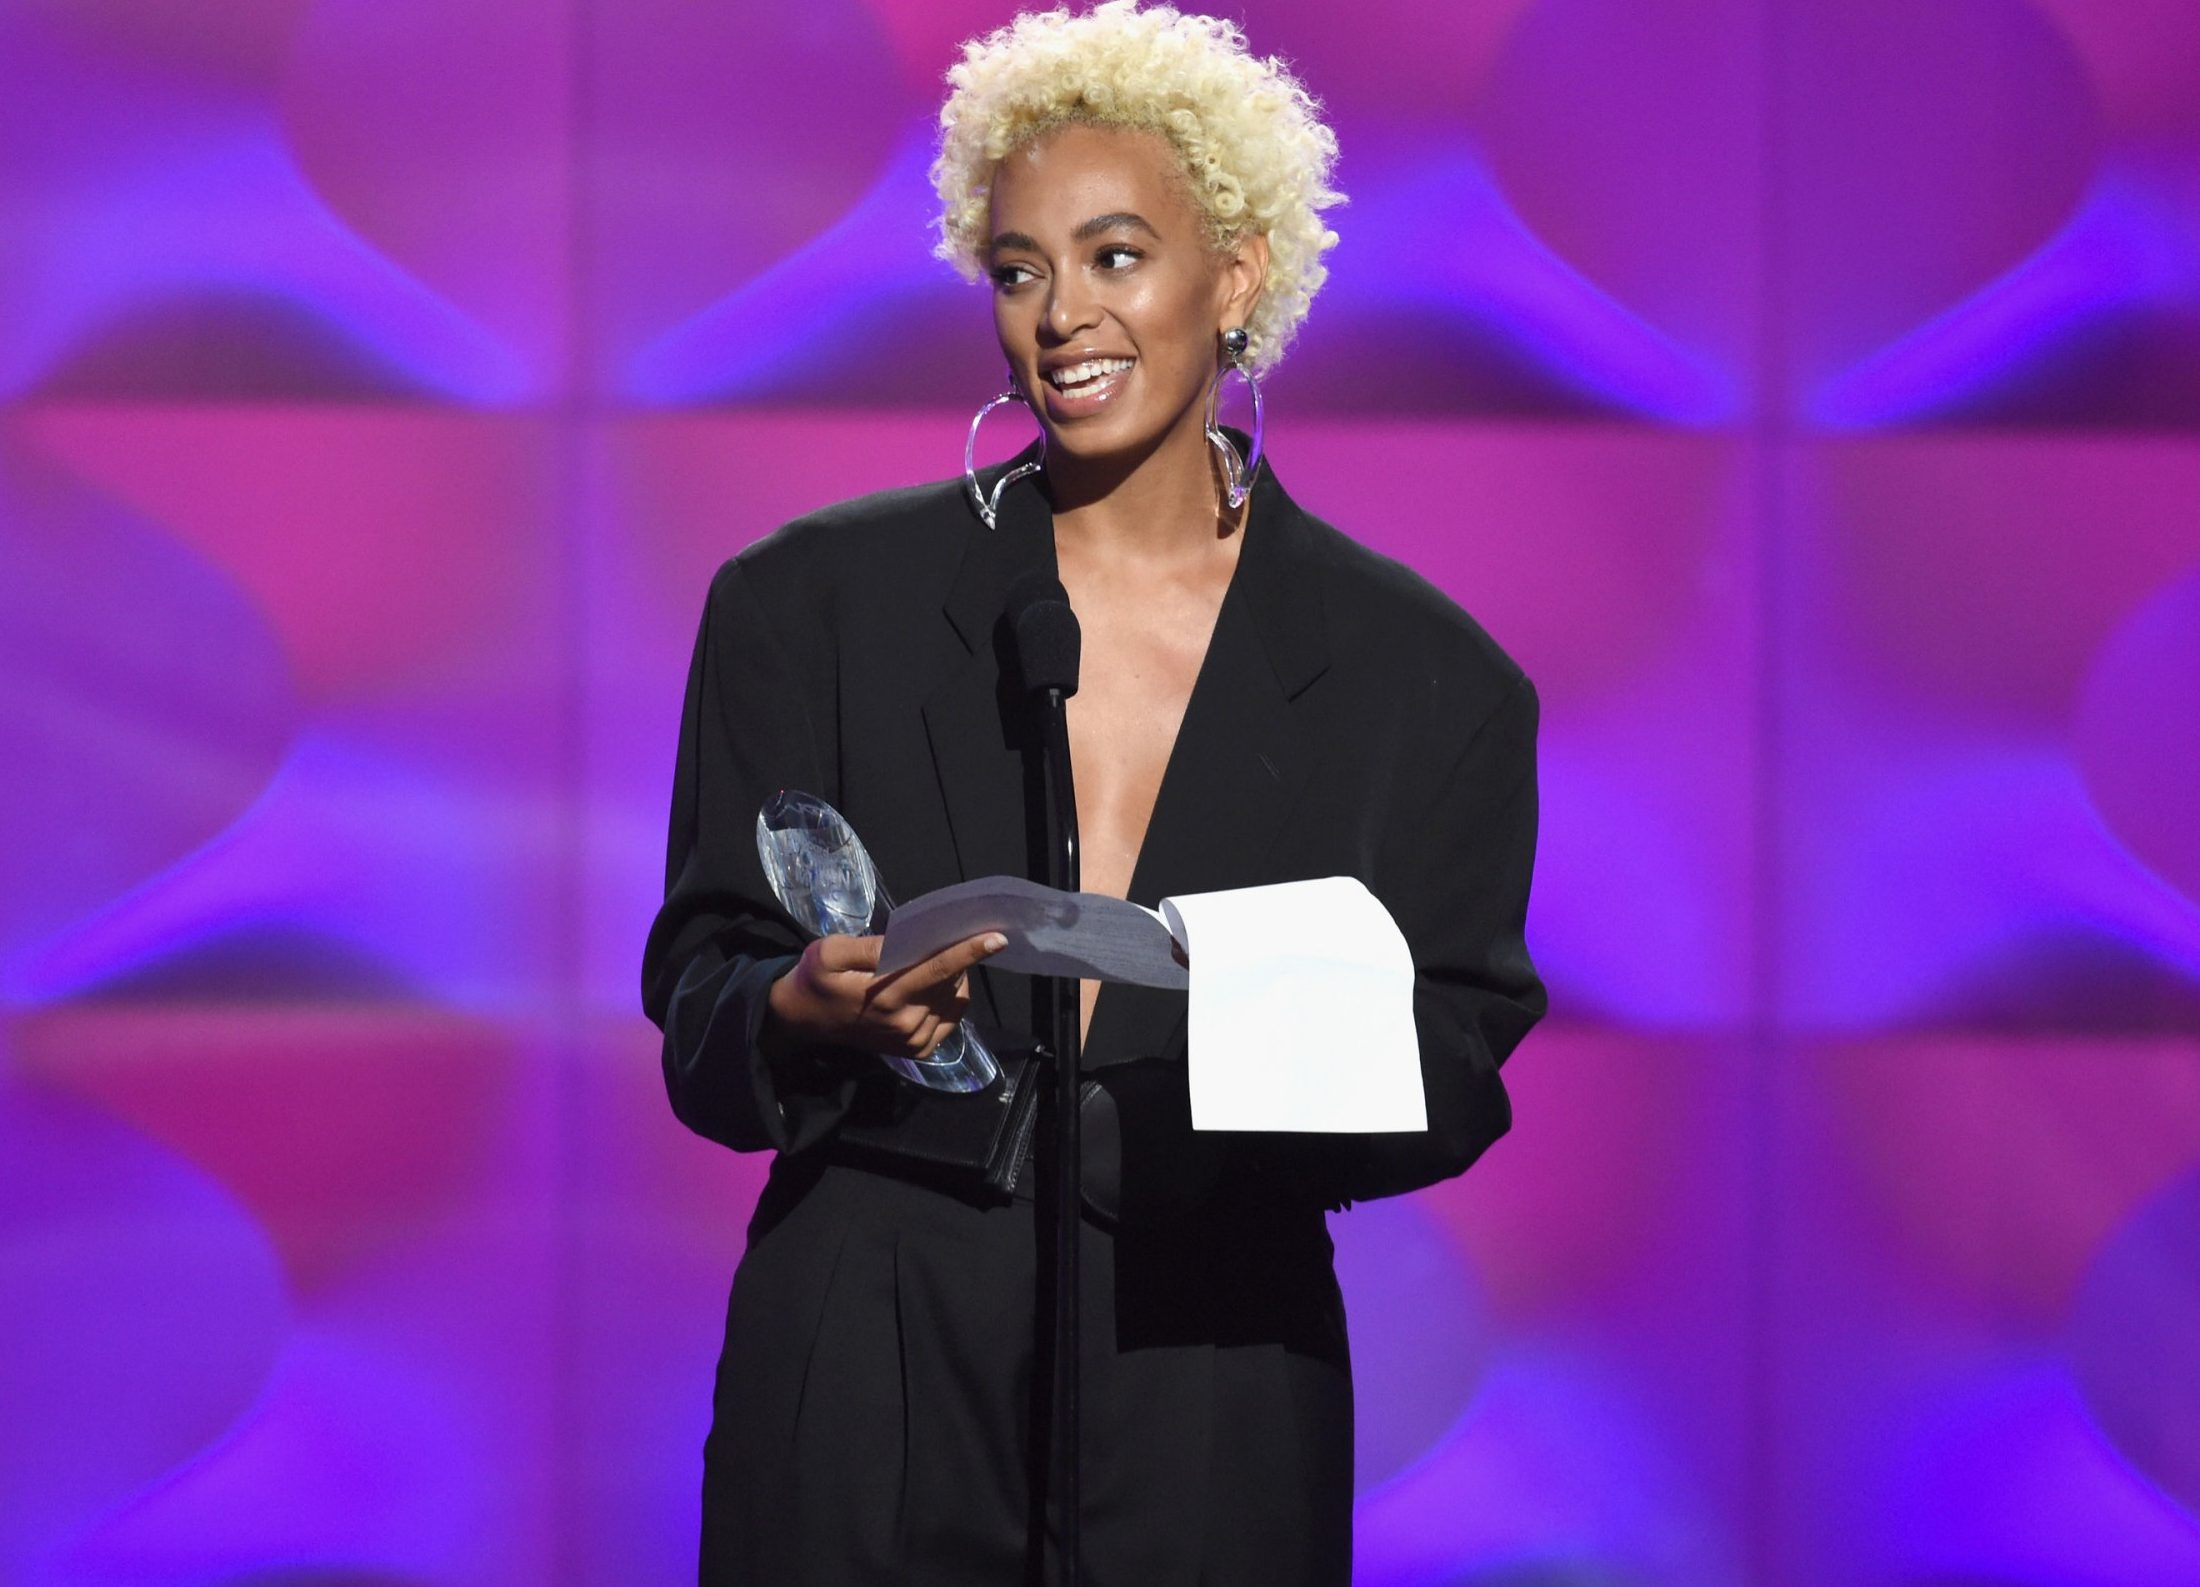 Solange announces it's a 'new day' for women in music as she's honoured for her impact on the industry